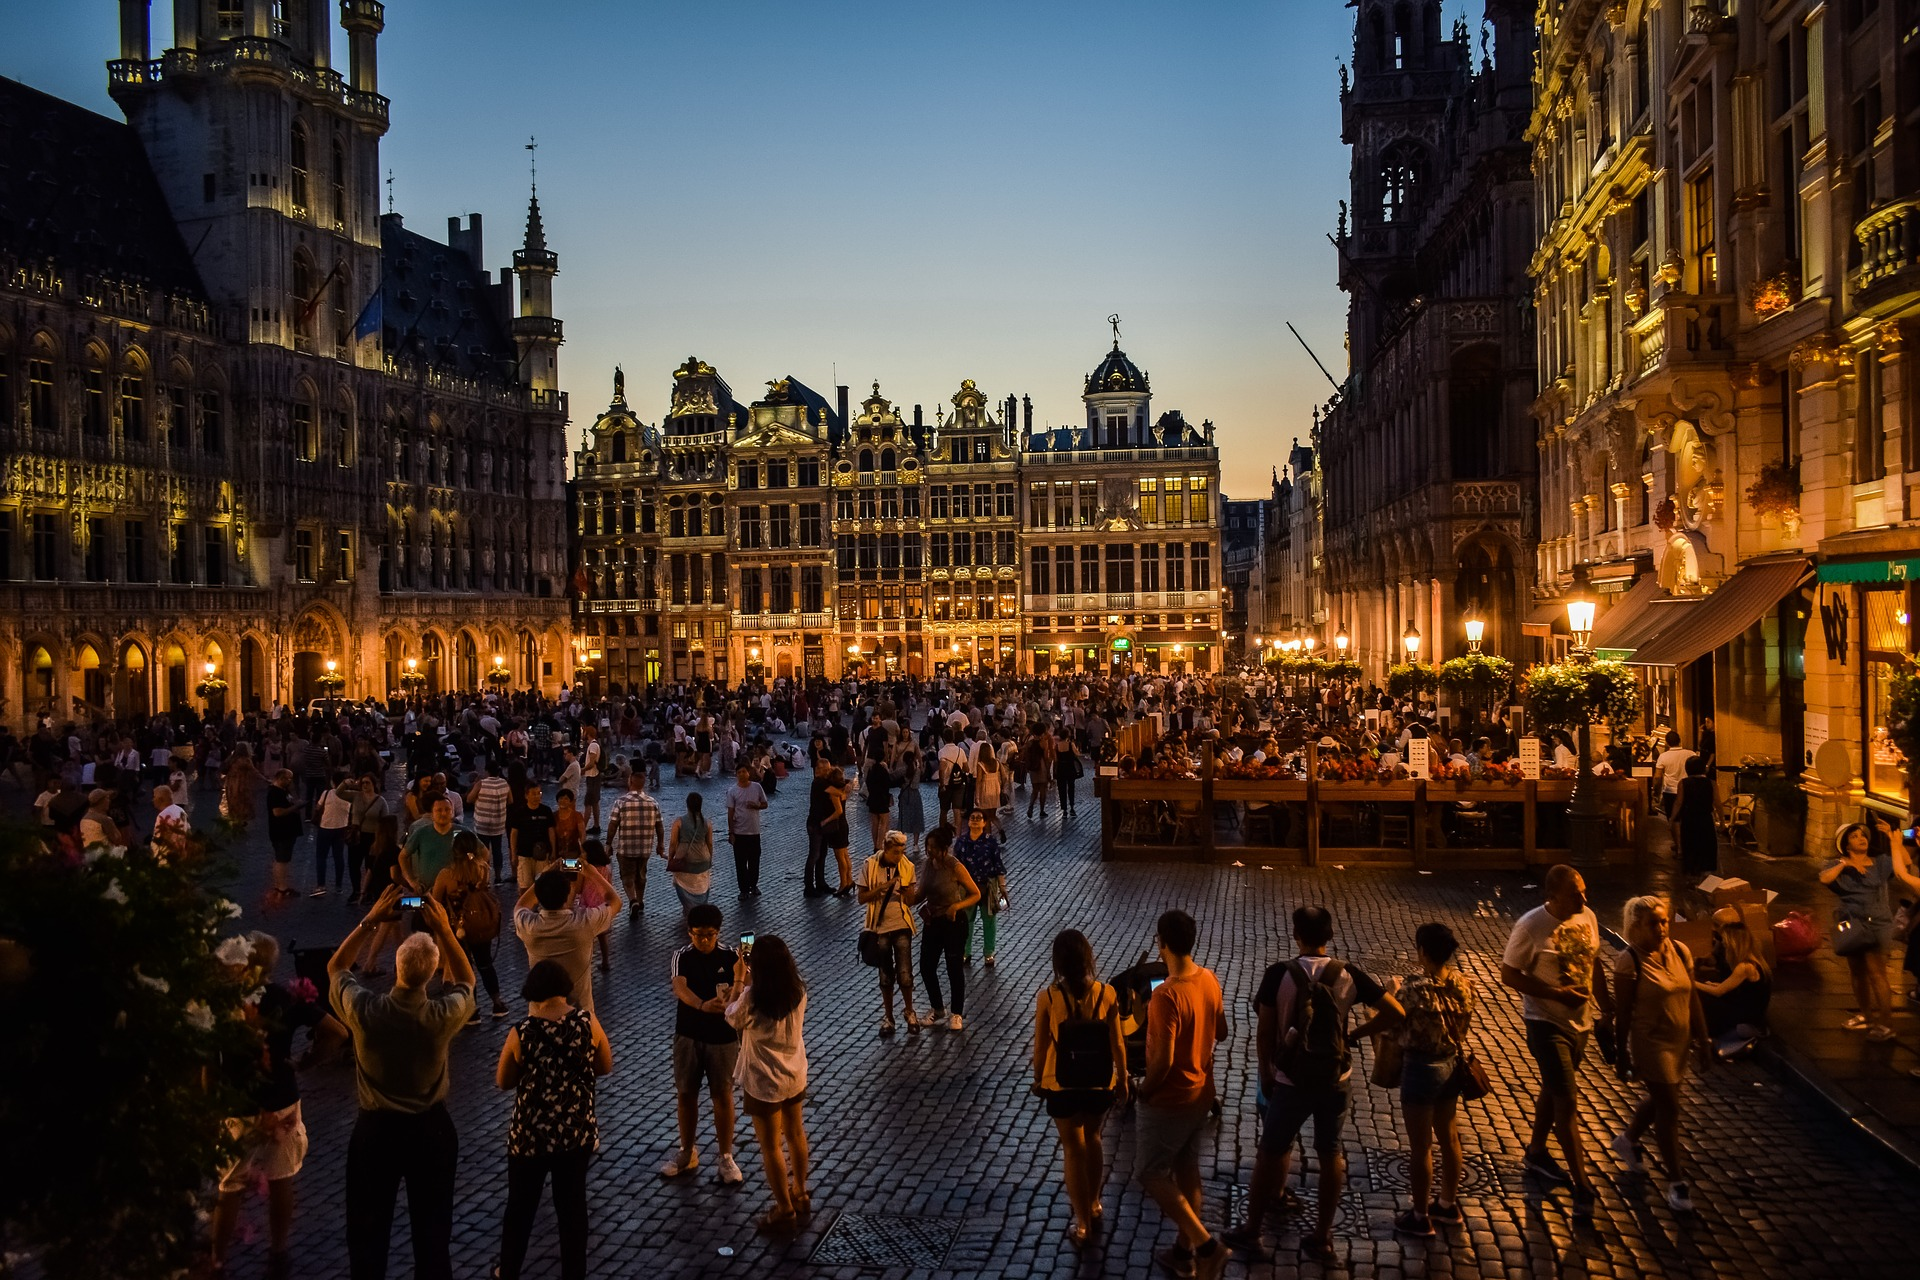 Bruxelles_by_night_CC0.jpg?1544789064